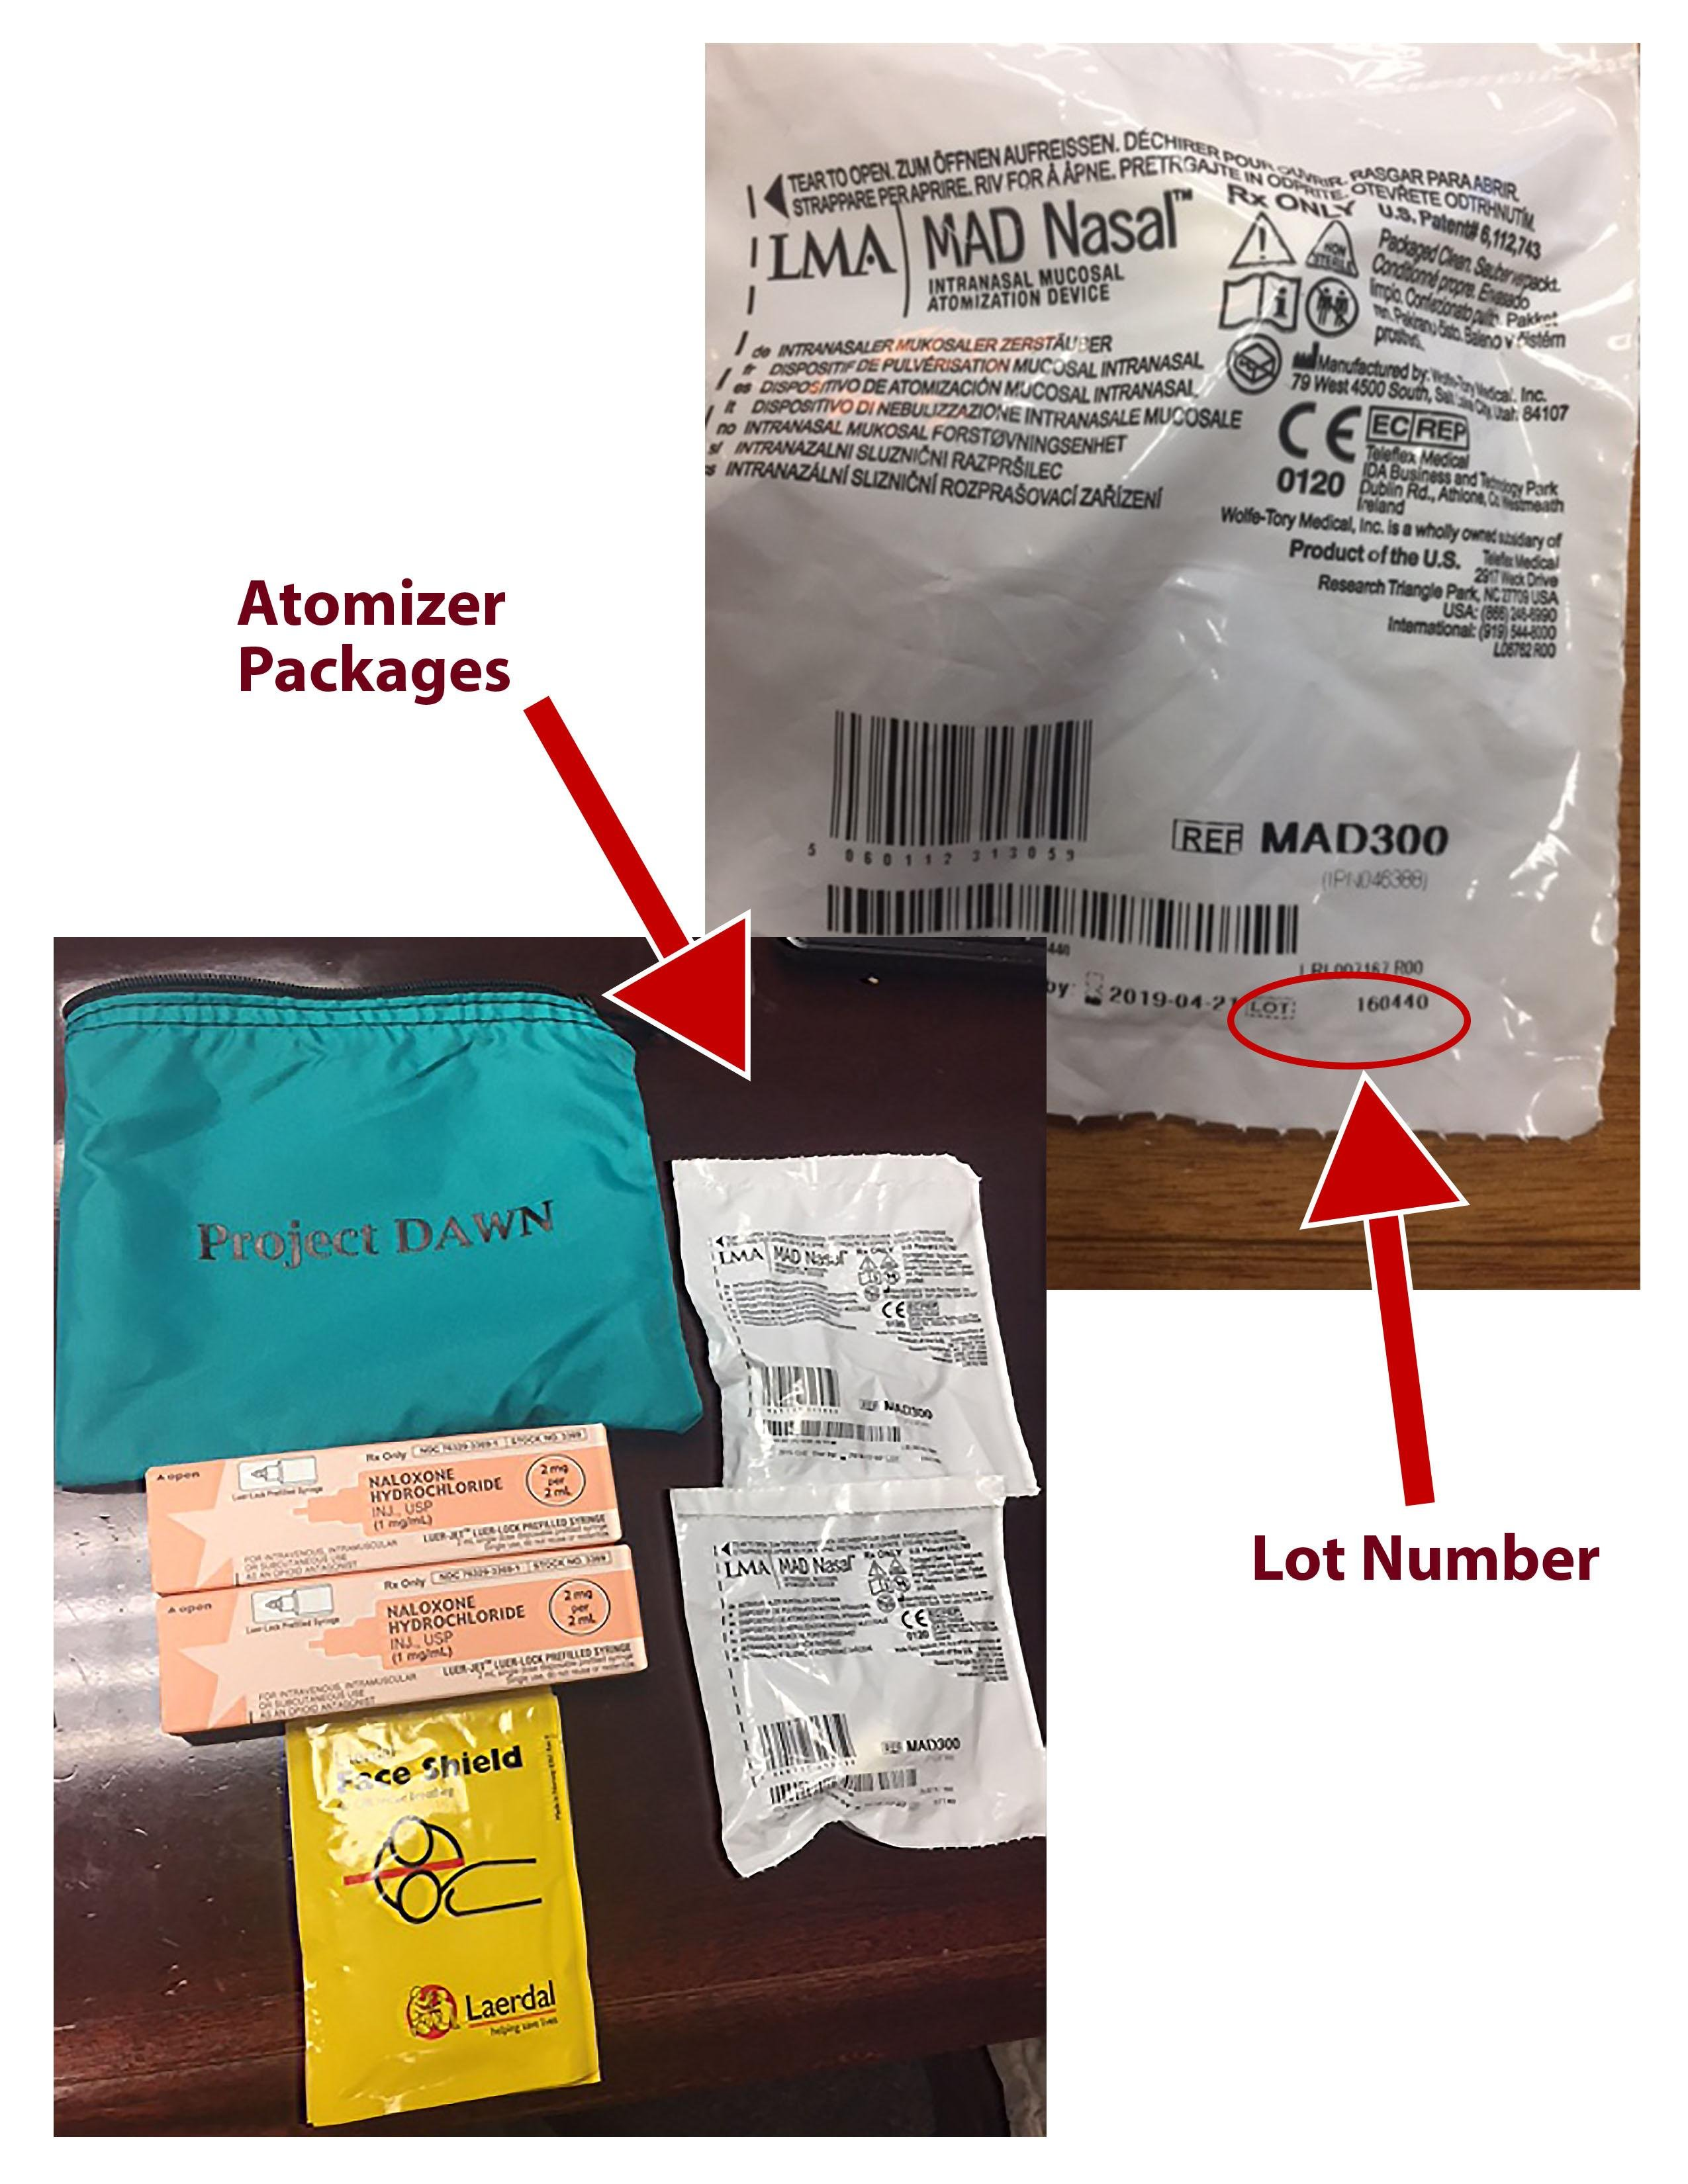 Recall issued for device that delivers overdose reversal drug